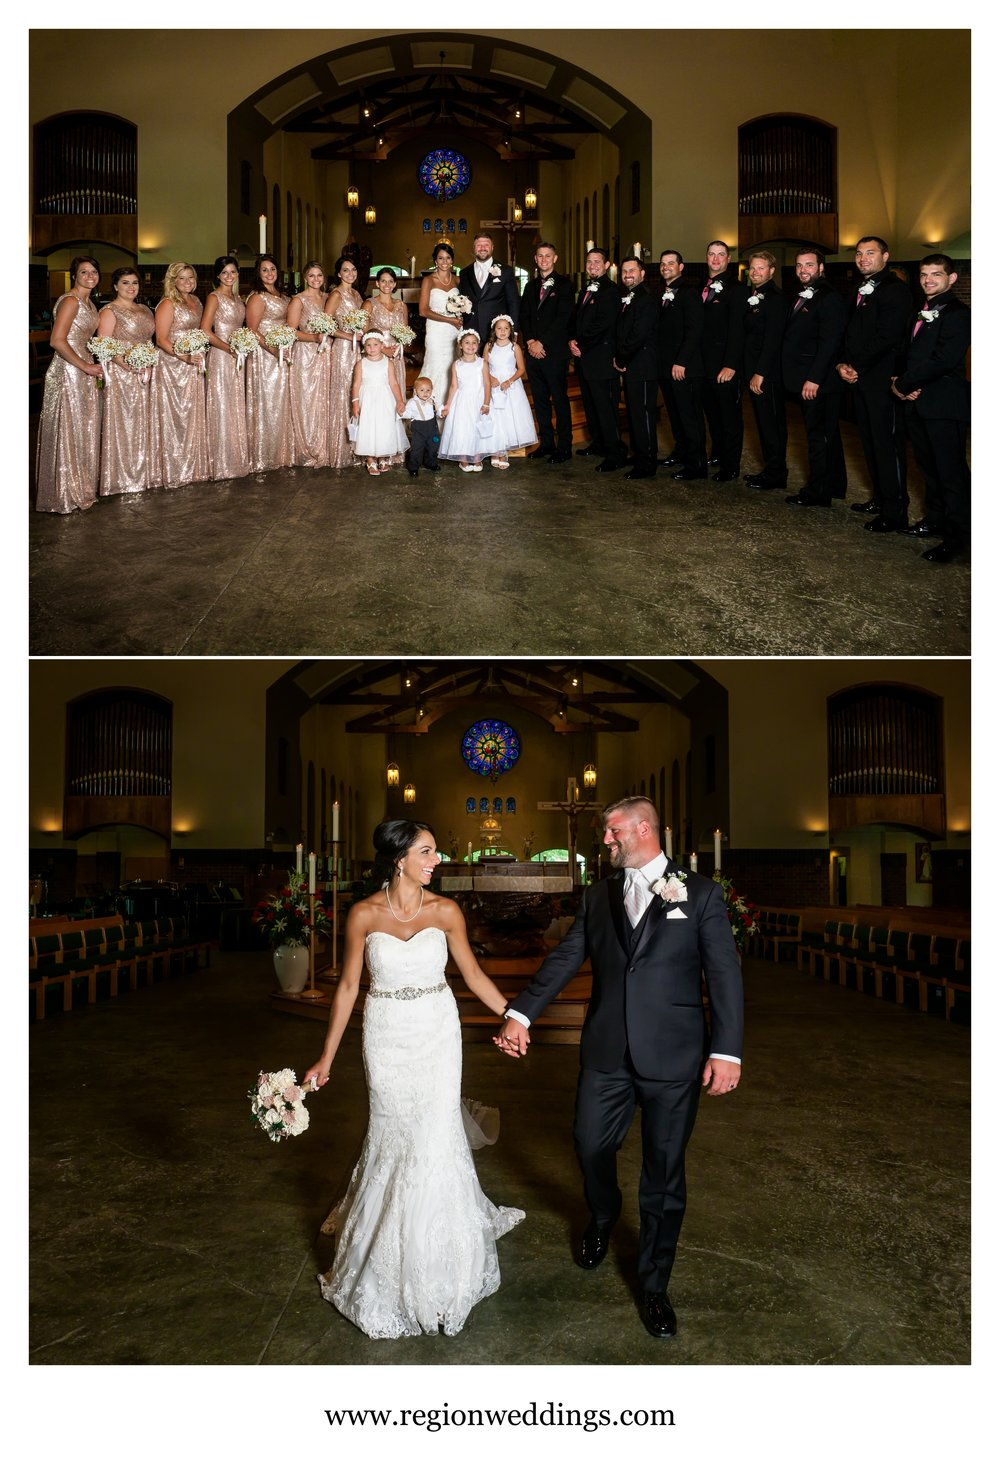 Wedding party photos at St. Michael's Parish in Schererville.